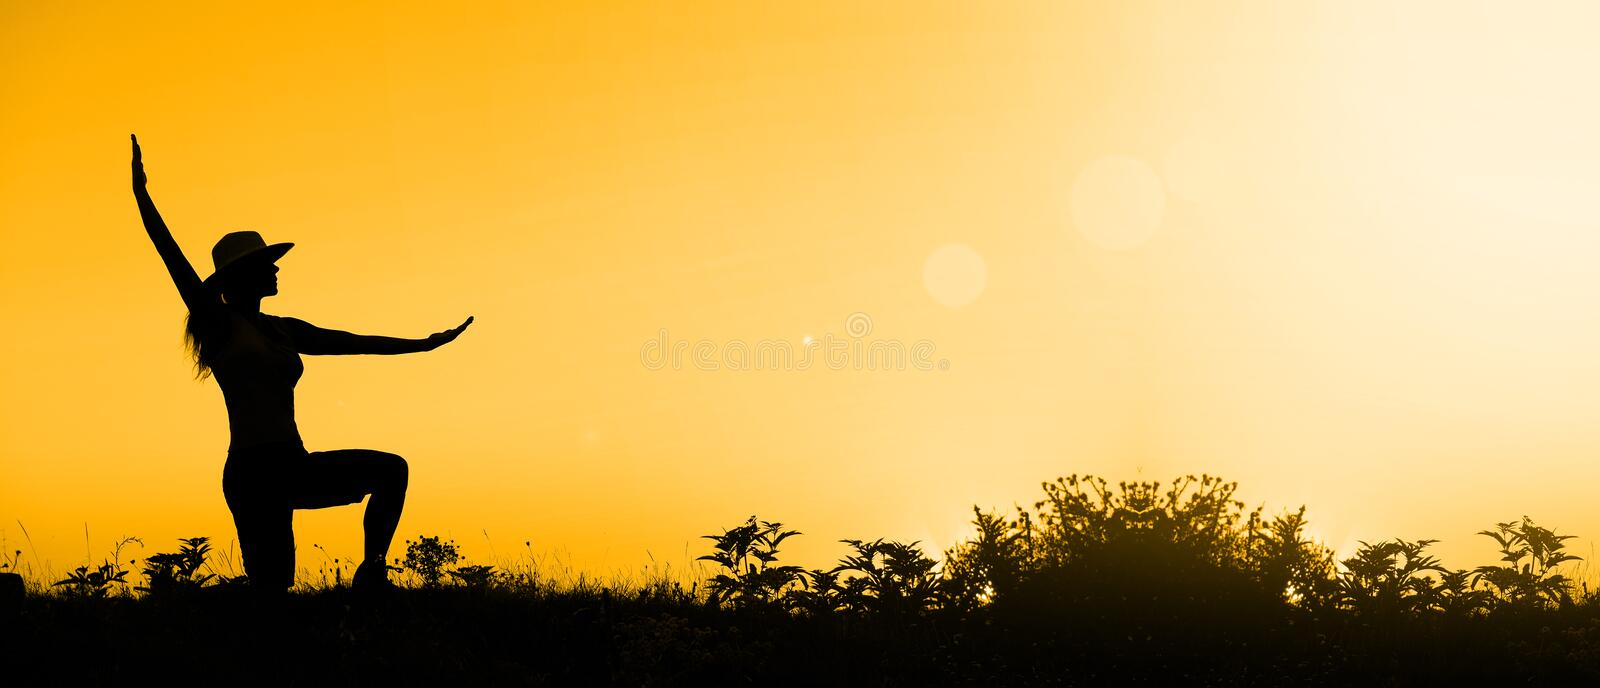 2 914 Meditation Banner Photos Free Royalty Free Stock Photos From Dreamstime